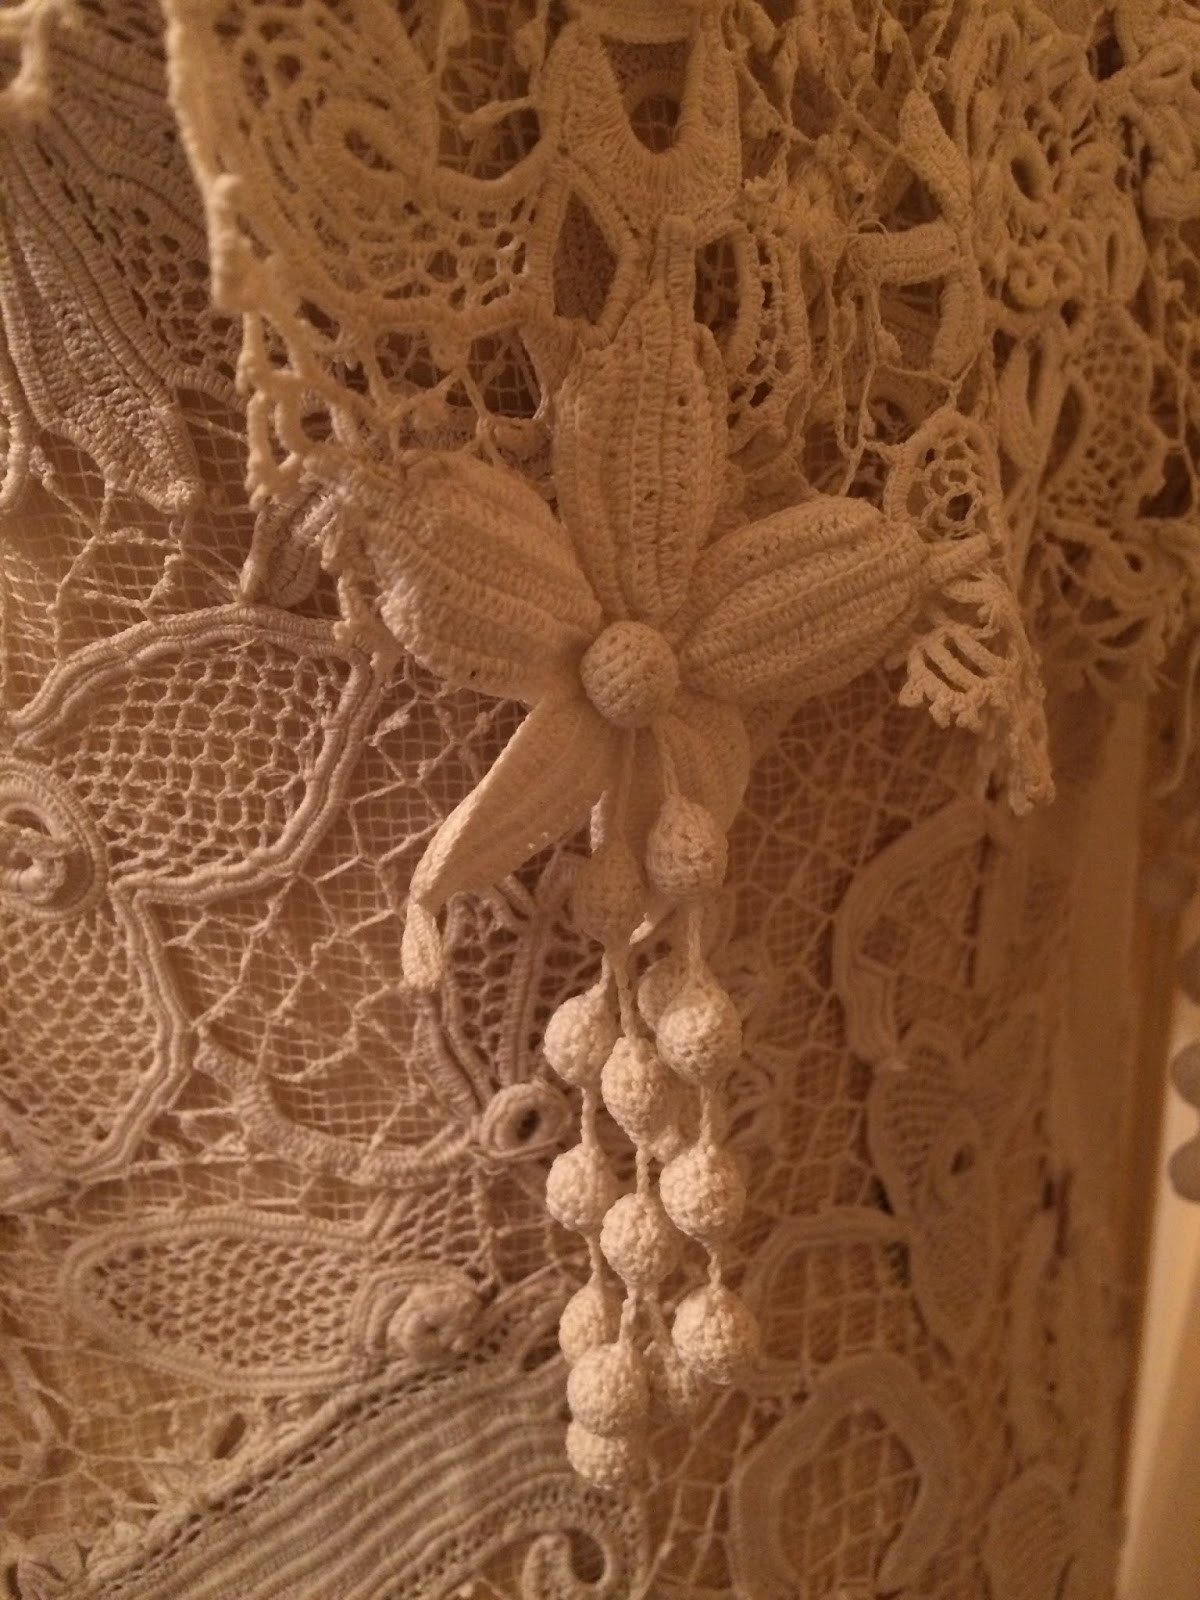 Awesome Rosemary Cathcart Antique Lace and Vintage Fashion Irish Lace Of Incredible 40 Ideas Irish Lace